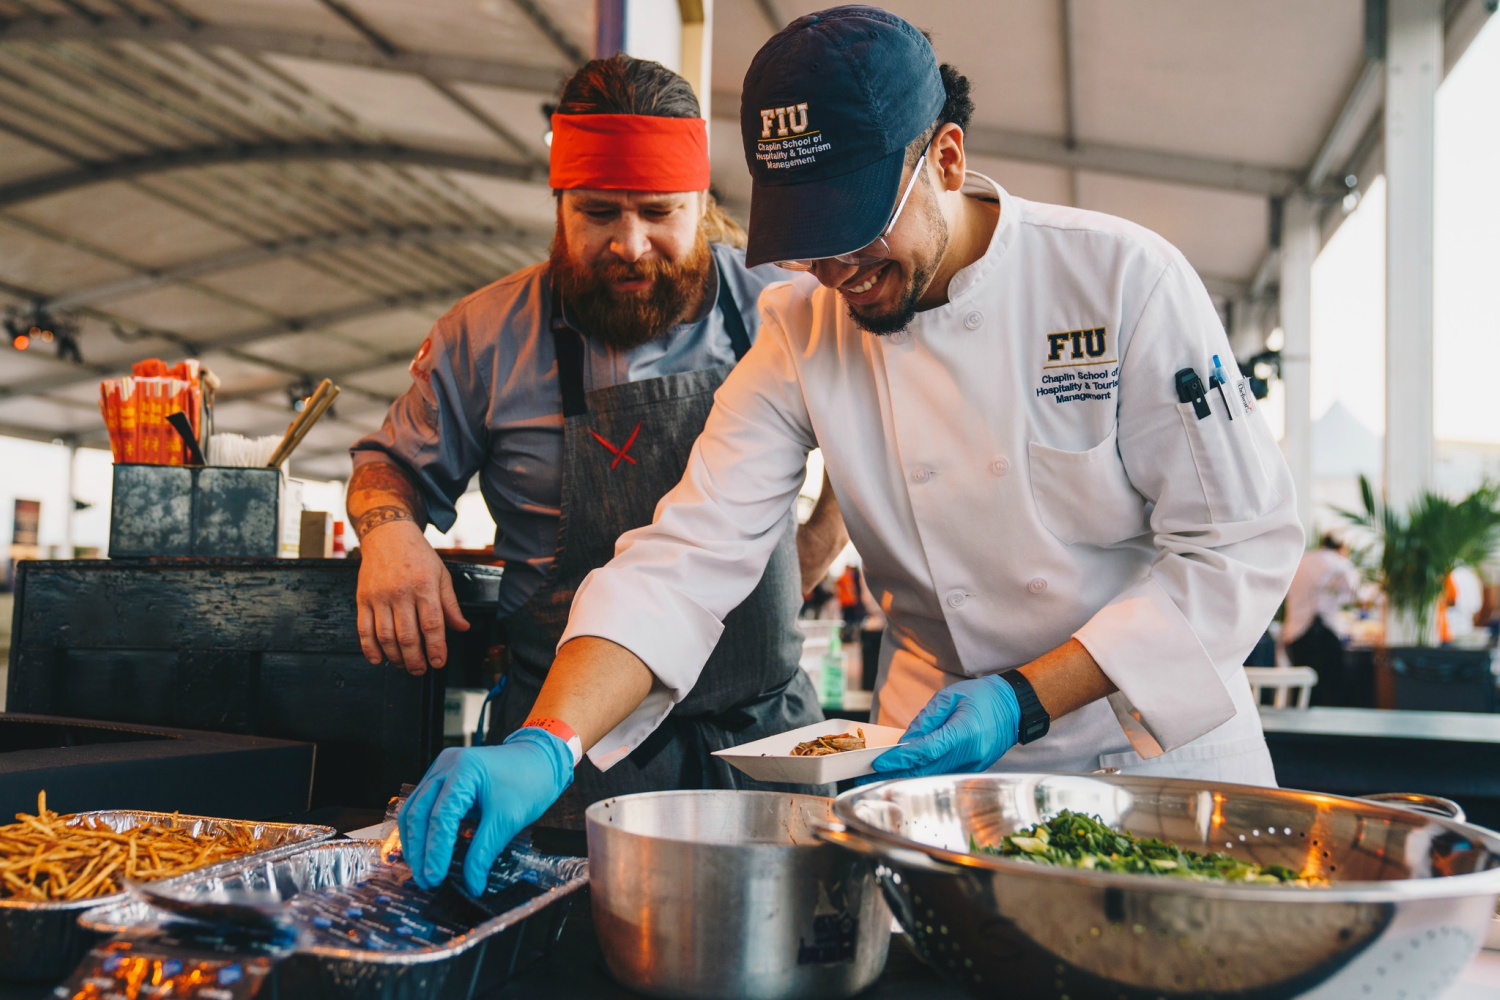 Wine, food festival benefiting FIU takes over South Florida